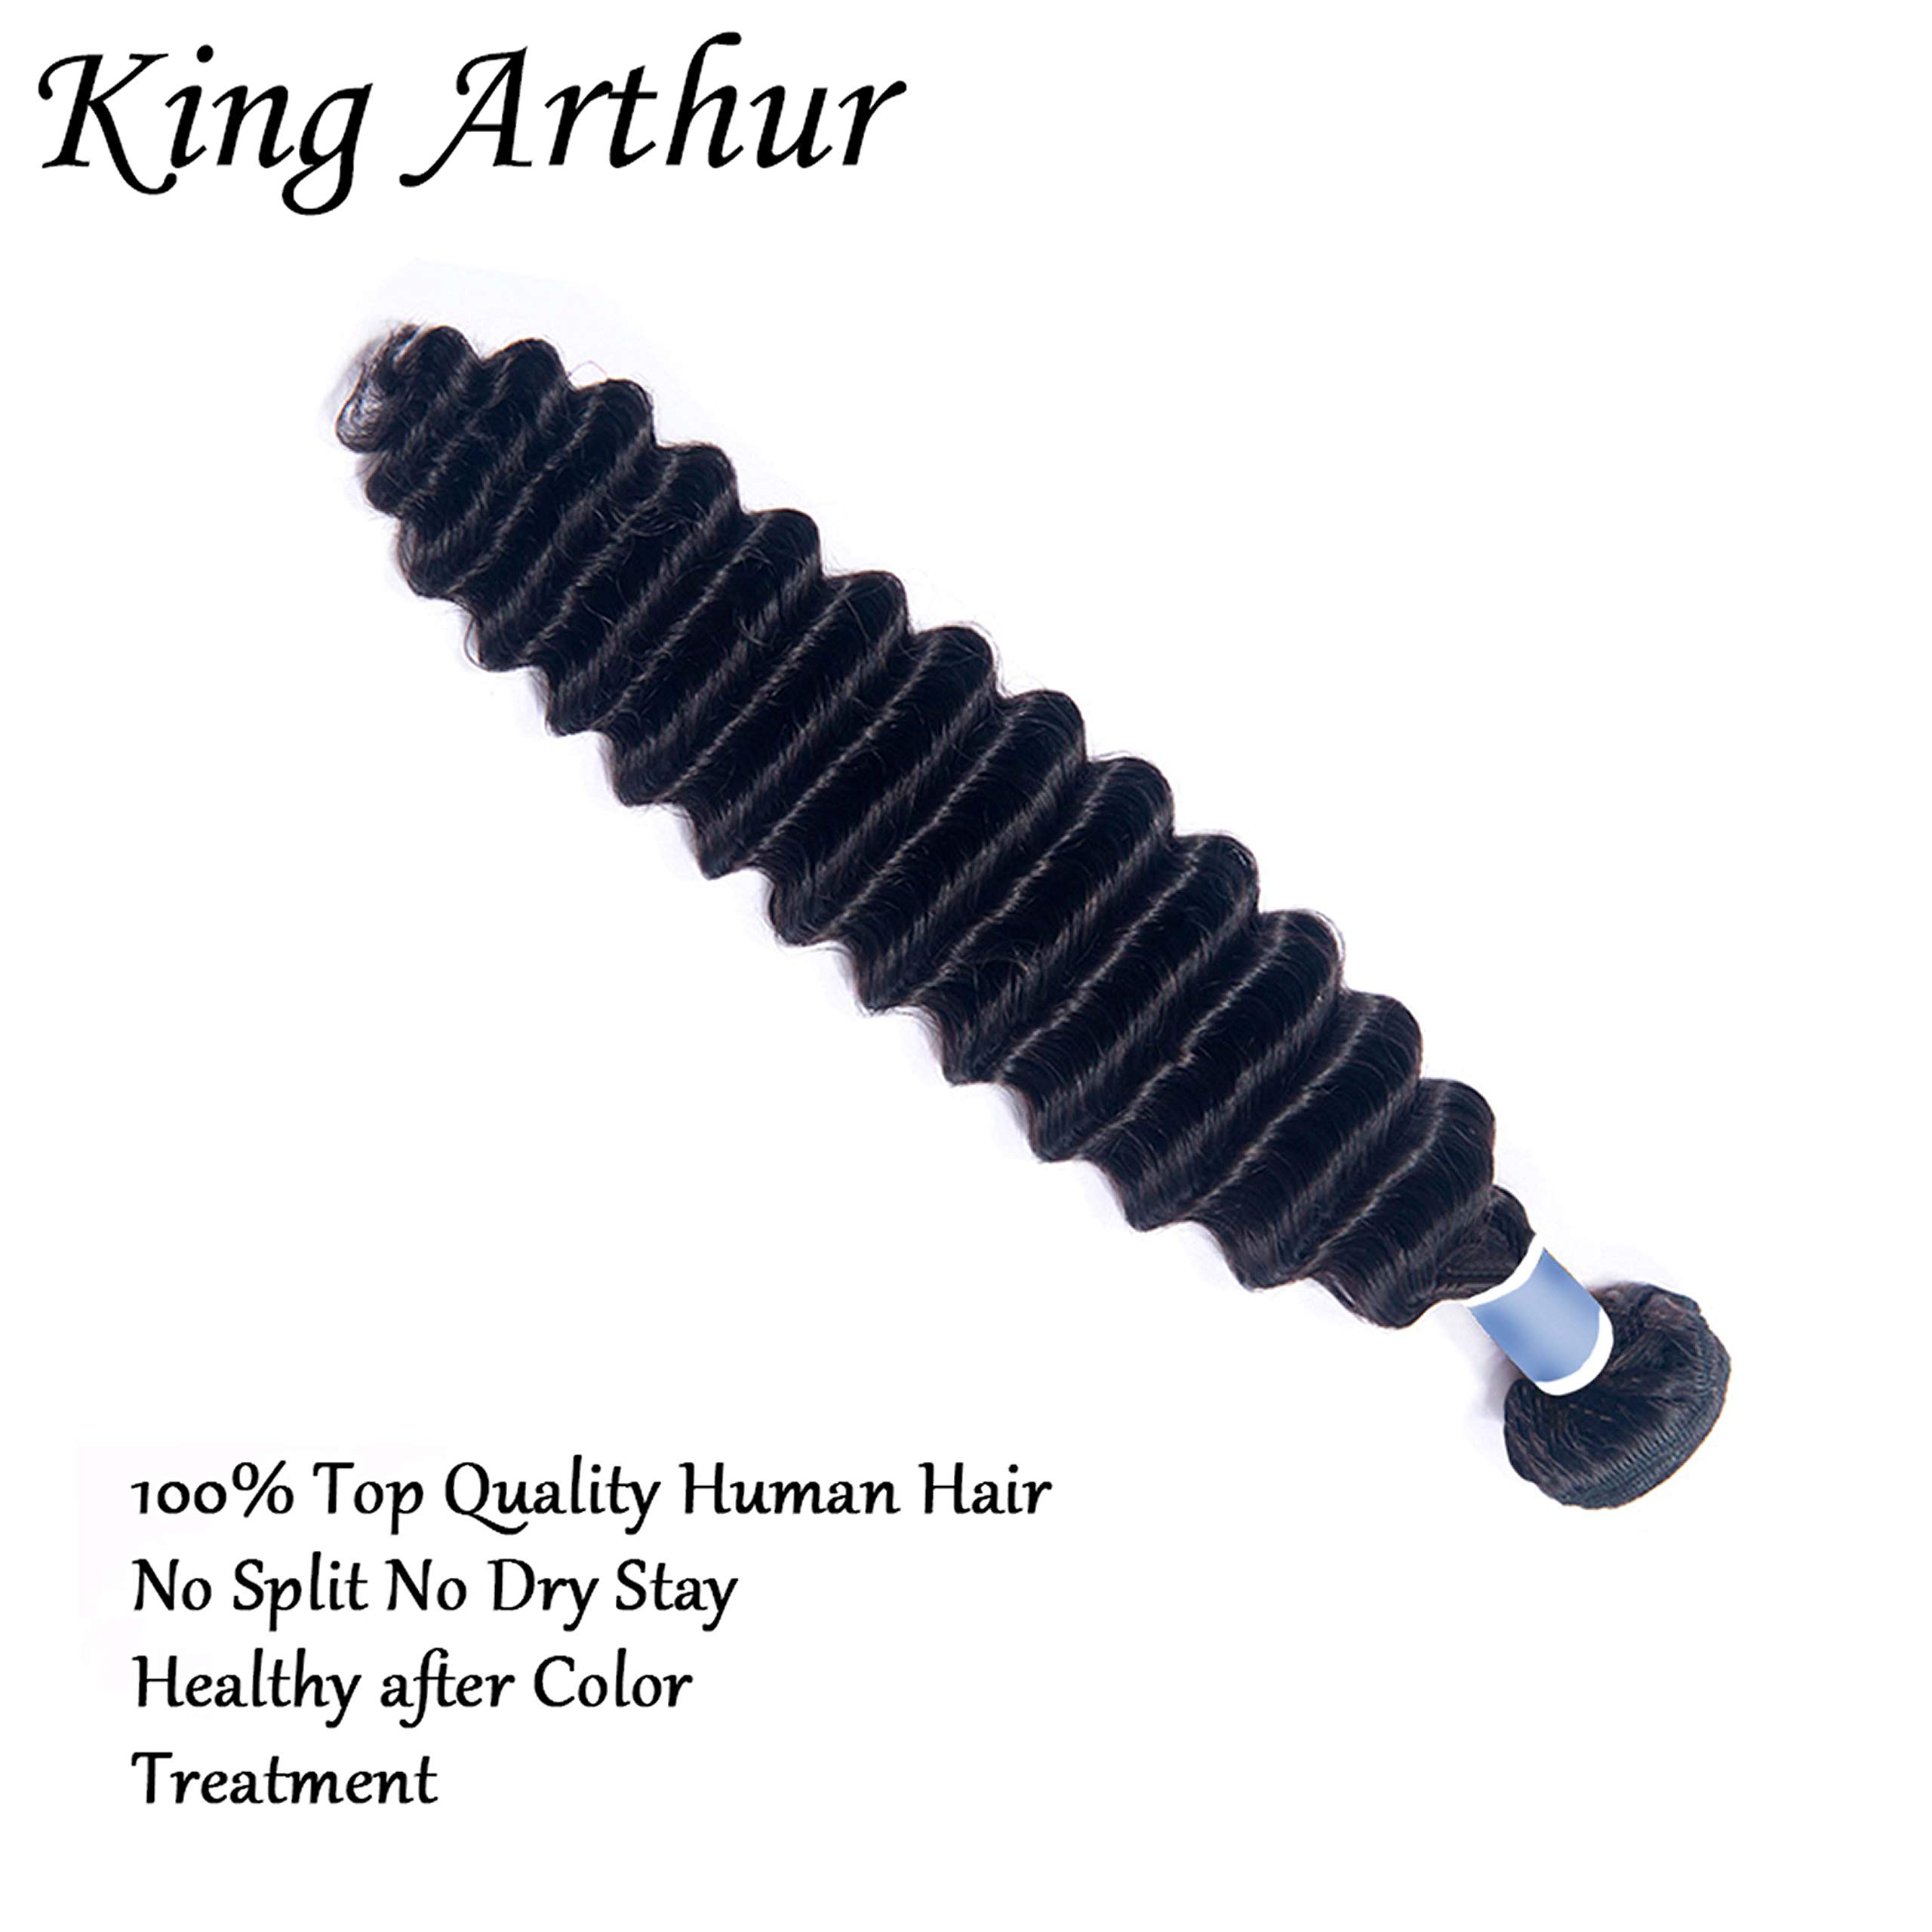 KING ARTHUR Hair 100% Human Hair Bundles Deep Wave Bundles Soft Human Hair Extension Natural Black Color for Women girls (20'') by King Arthur